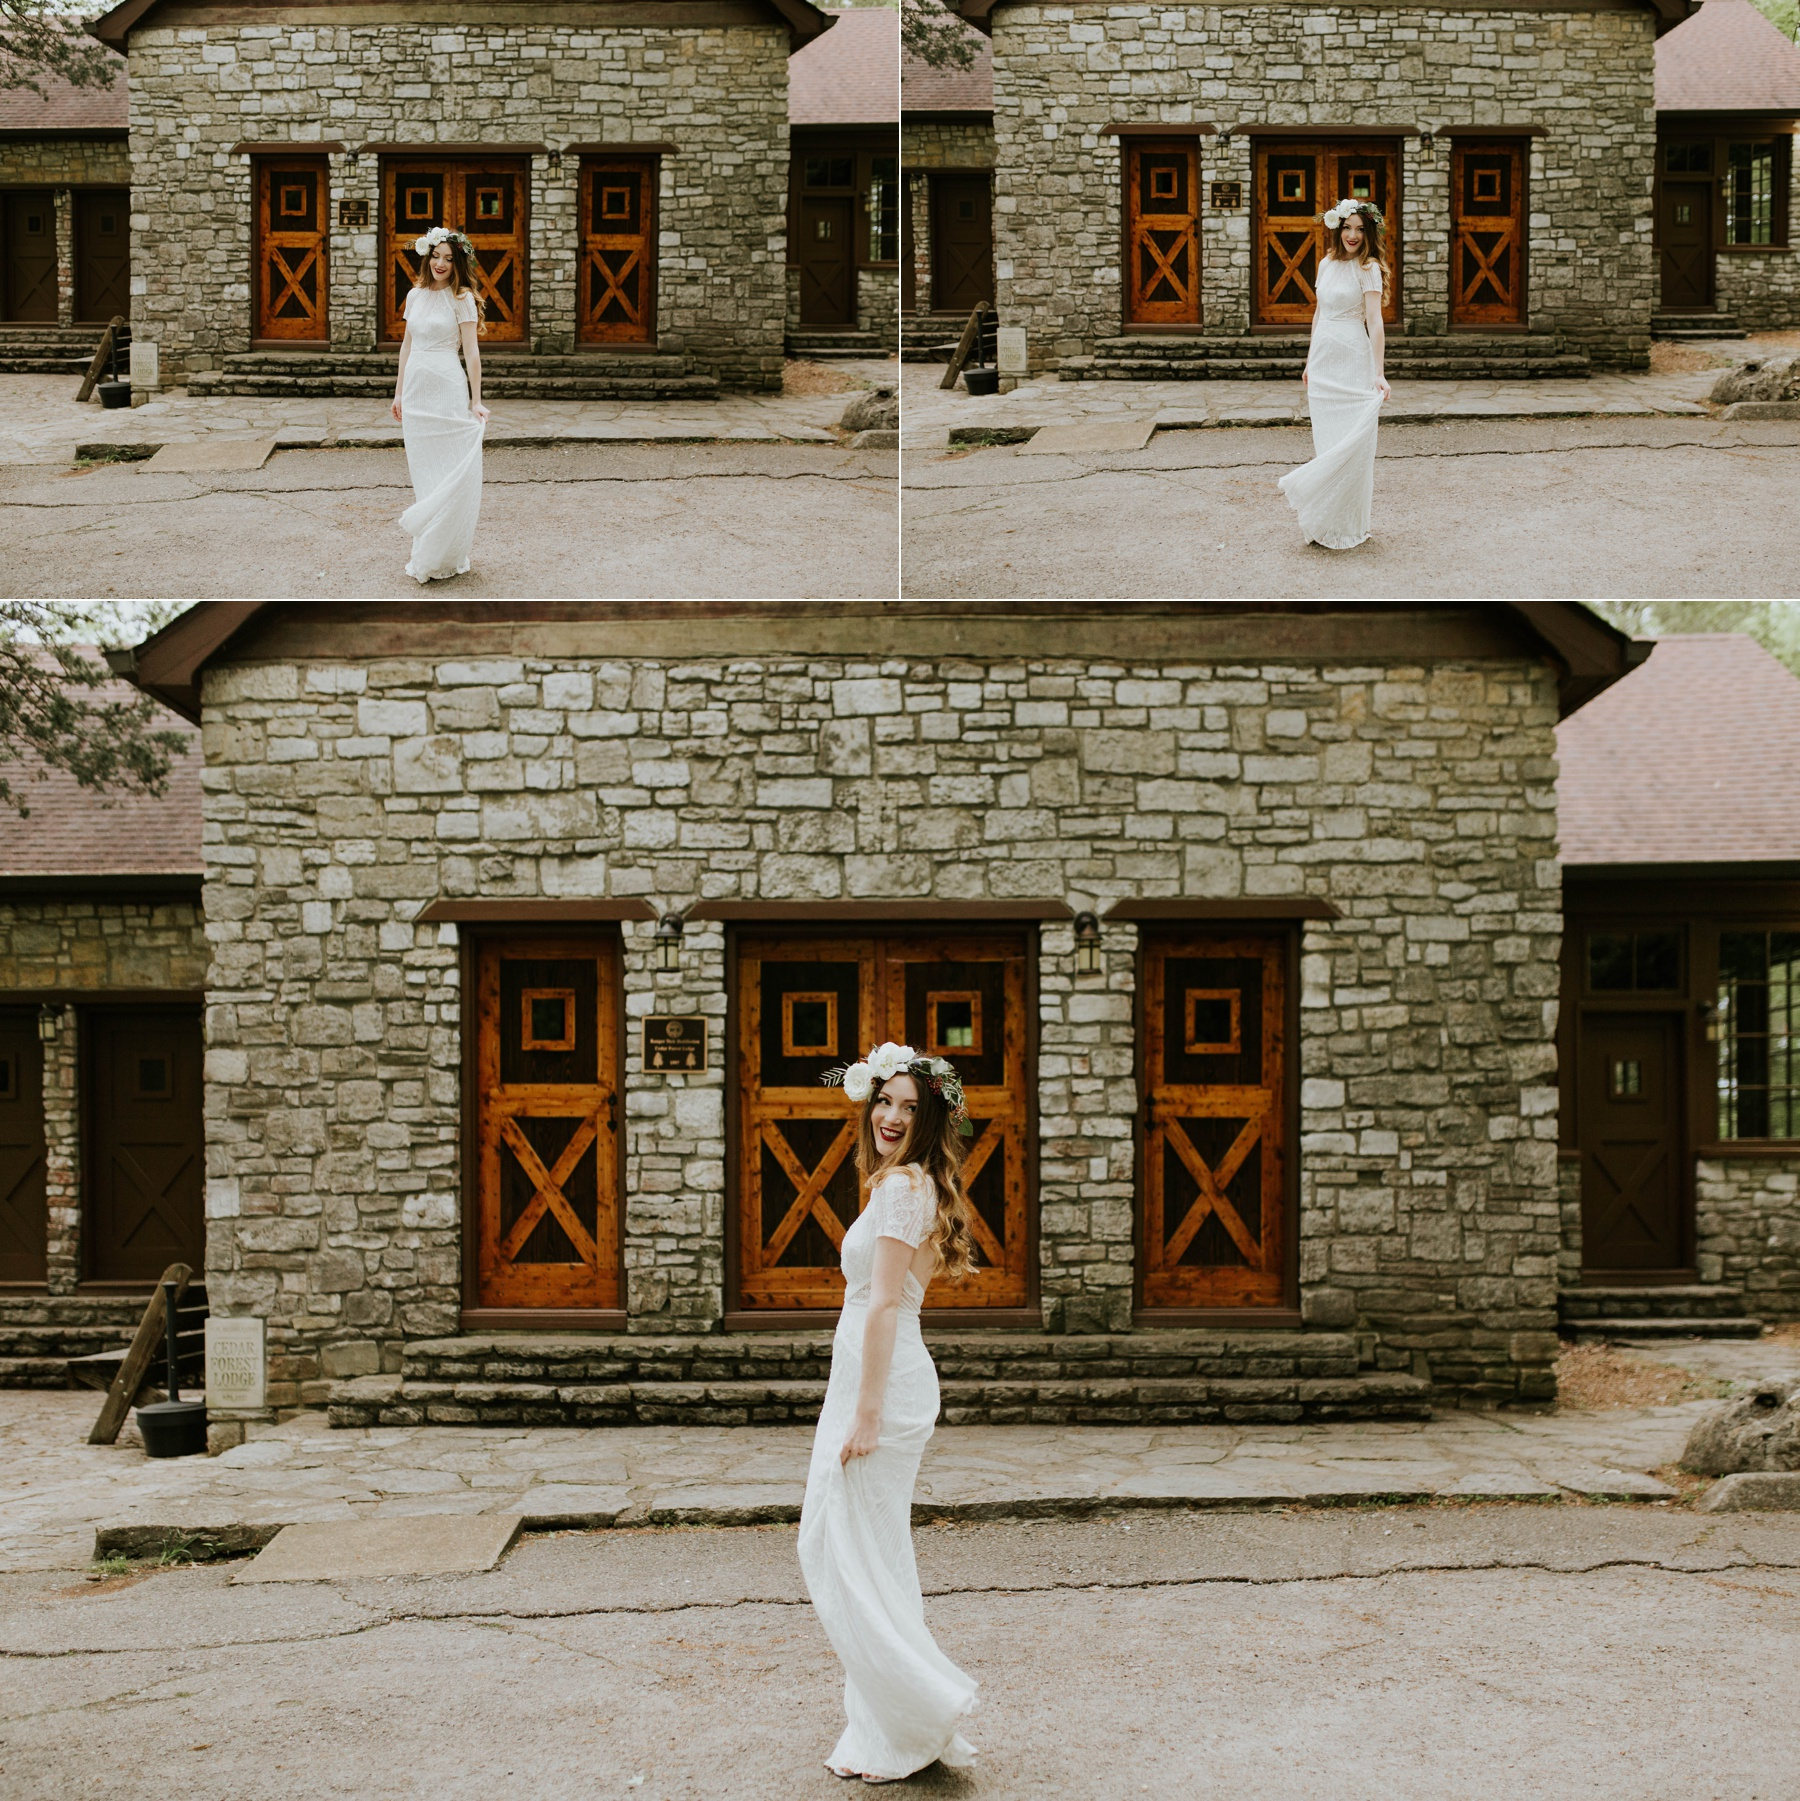 ThroughVictoriasLens_CedarsOfLebanon_Bridals16.jpg